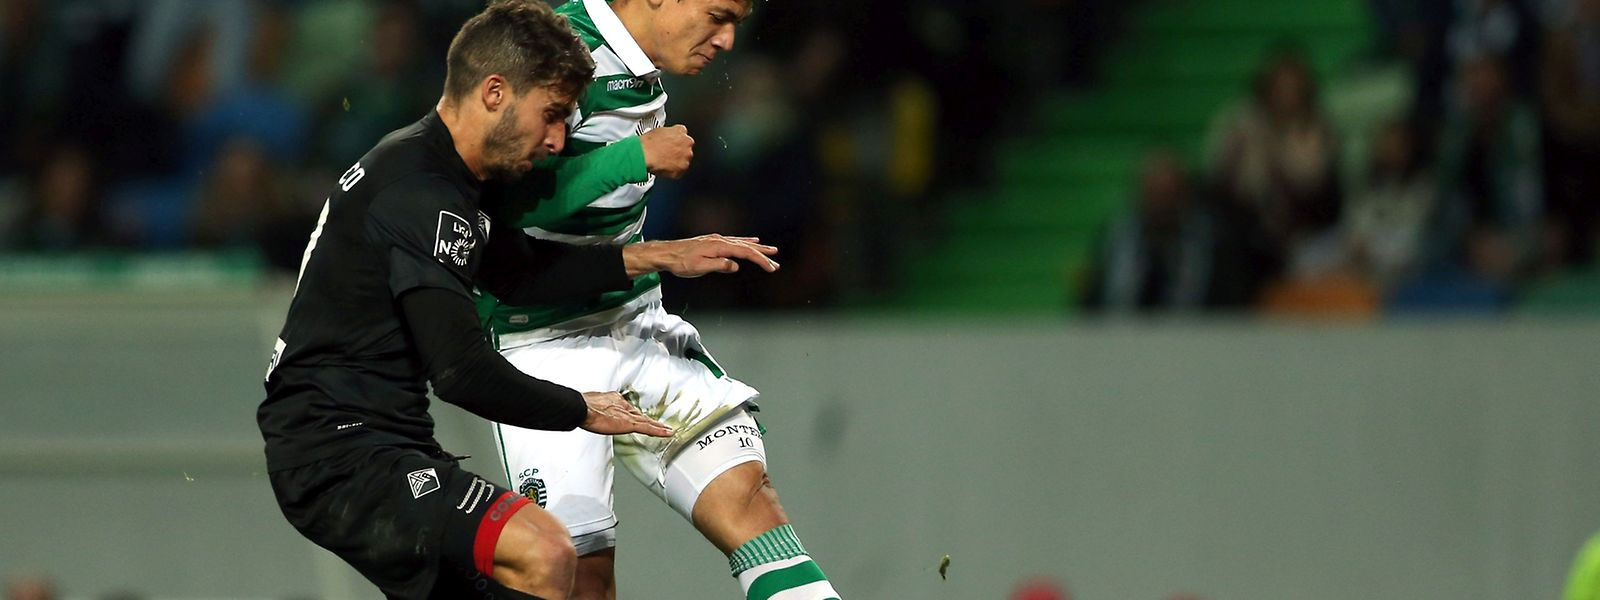 Sporting Lisbon player Fredi Montero (R) fights for the ball with Hugo Seco of Academica as he scores his team third goal during their Portuguese first league soccer match held at Alvalade Stadium, Lisbon, Portugal, 30th january 2016,.     MANUEL DE ALMEIDA/LUSA